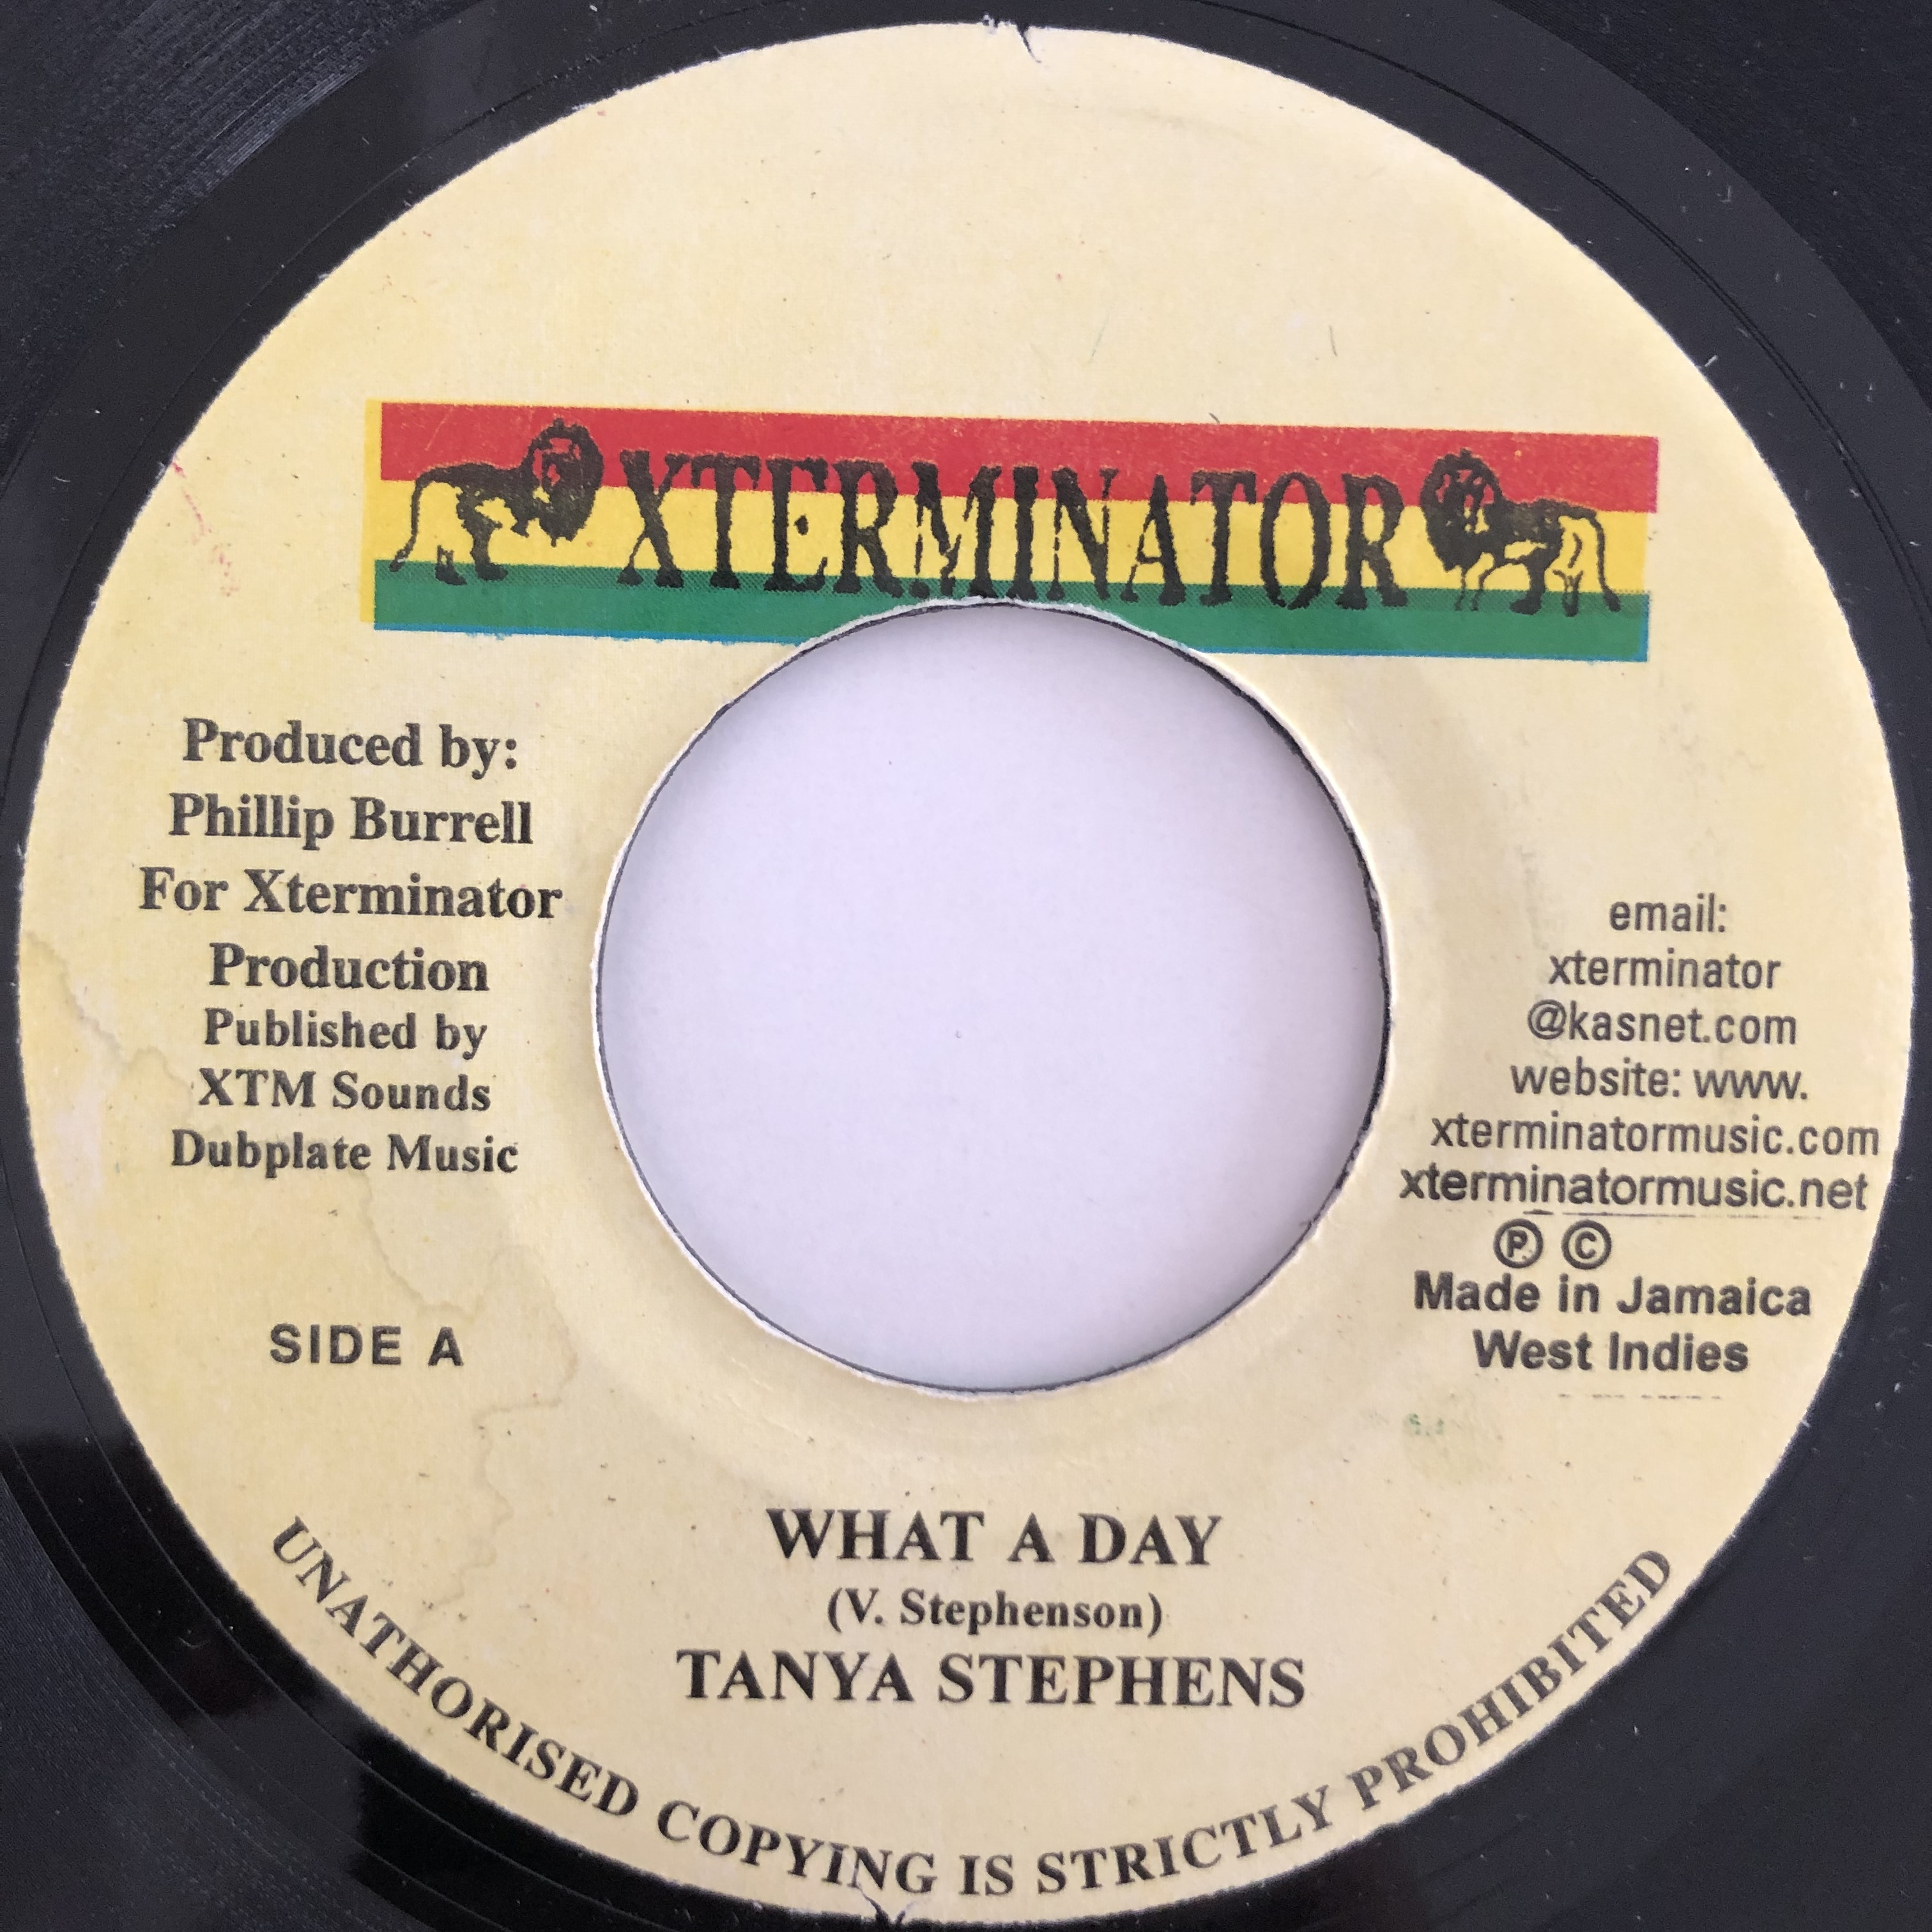 Tanya Stephens(タンヤスティーブンス) - What a day【7-20115】